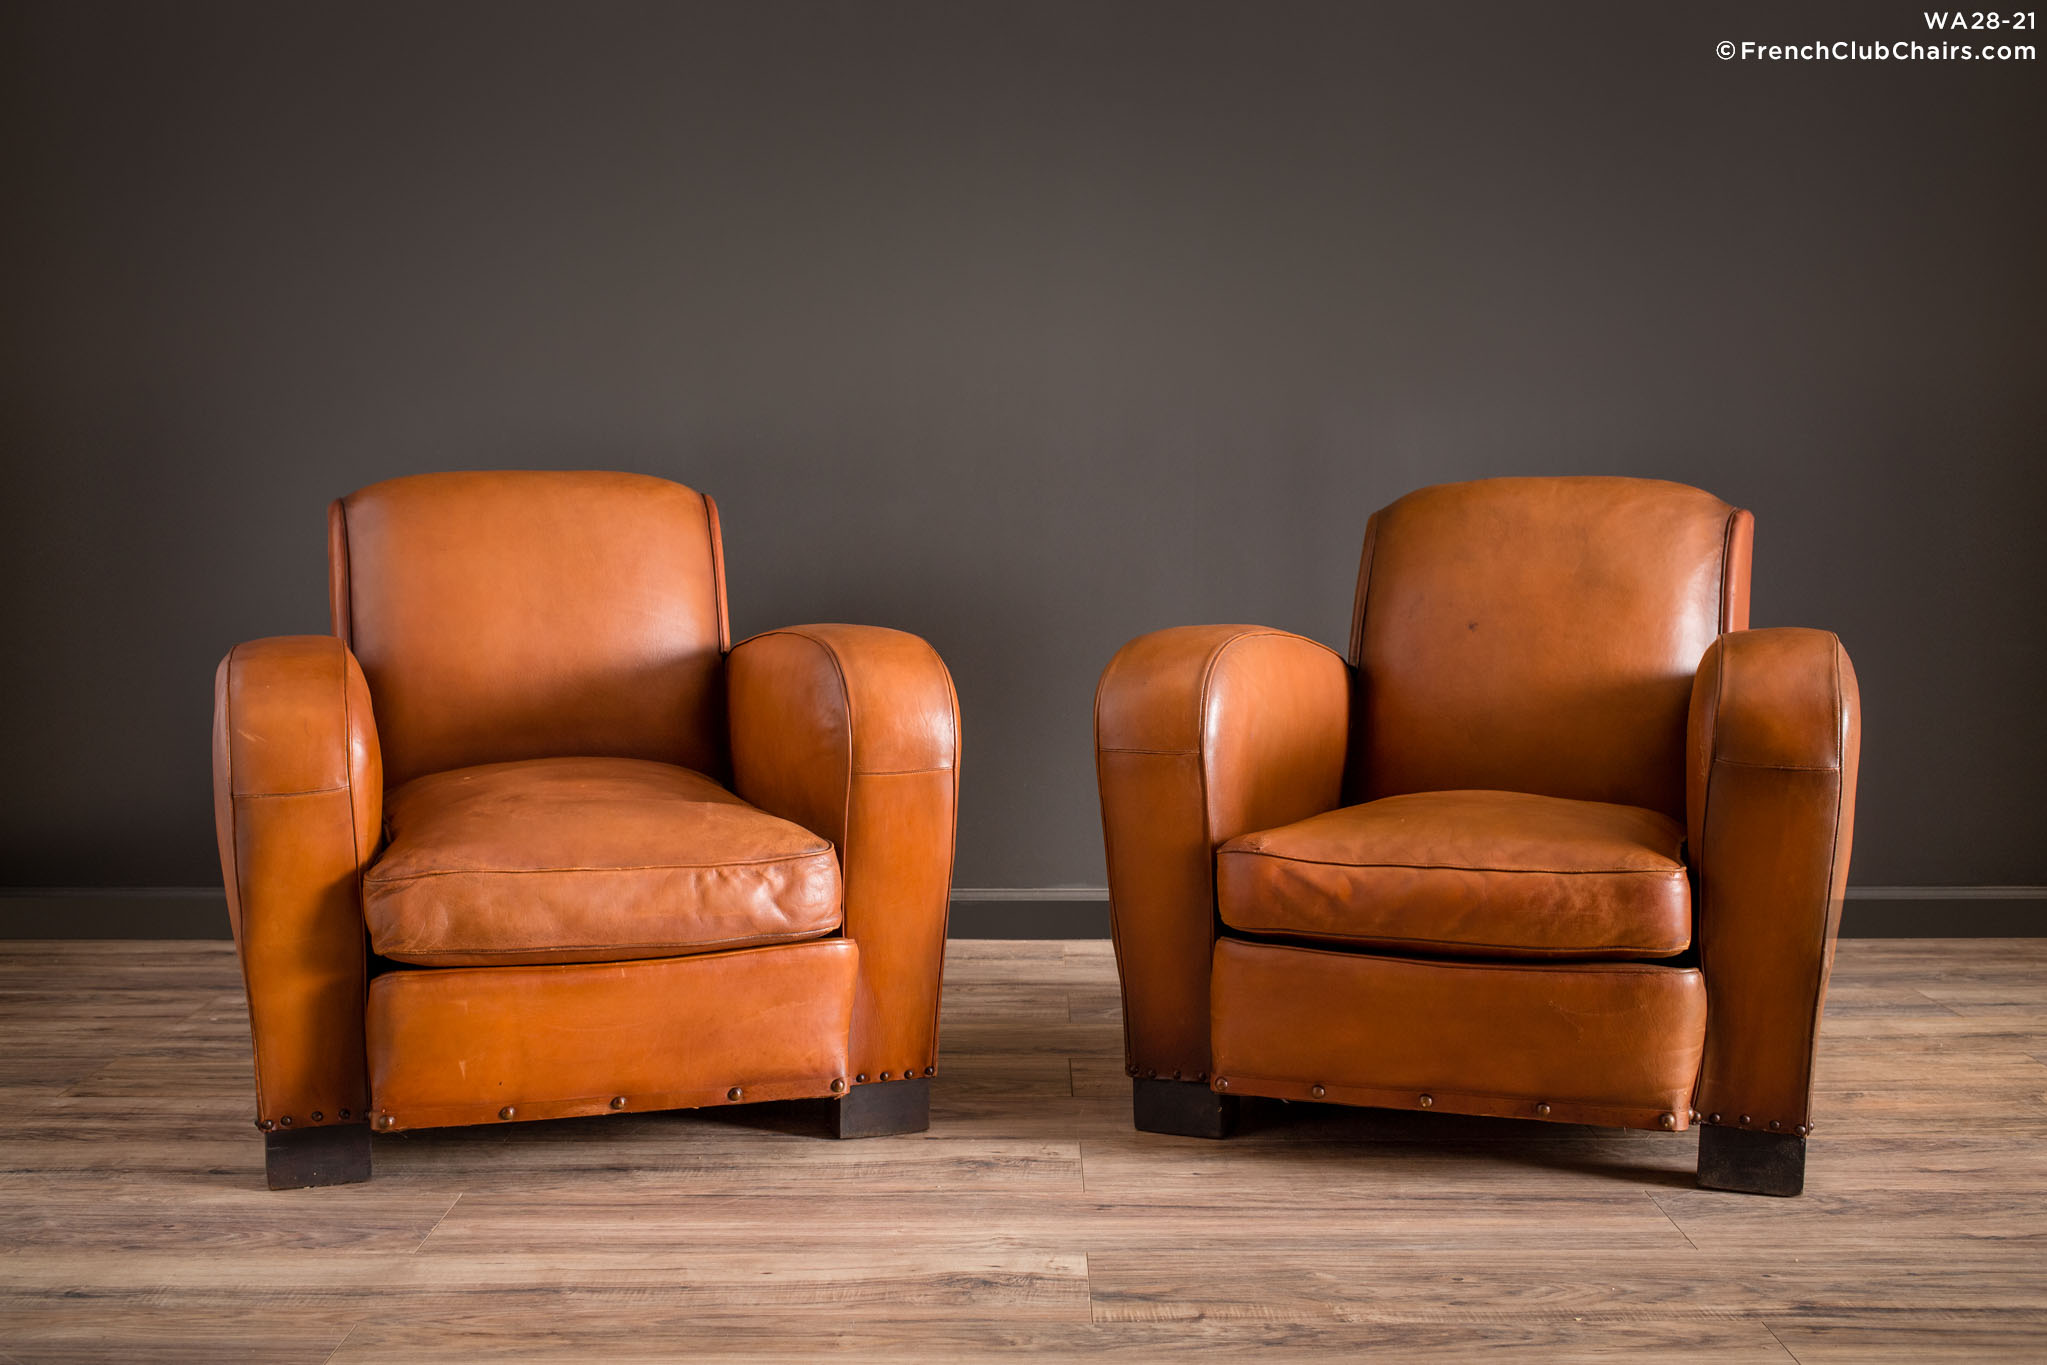 WA_28-21_Marsailles_Paquebot_Pair_R_1TQ1-williams-antiks-leather-french-club-chair-wa_fcccom